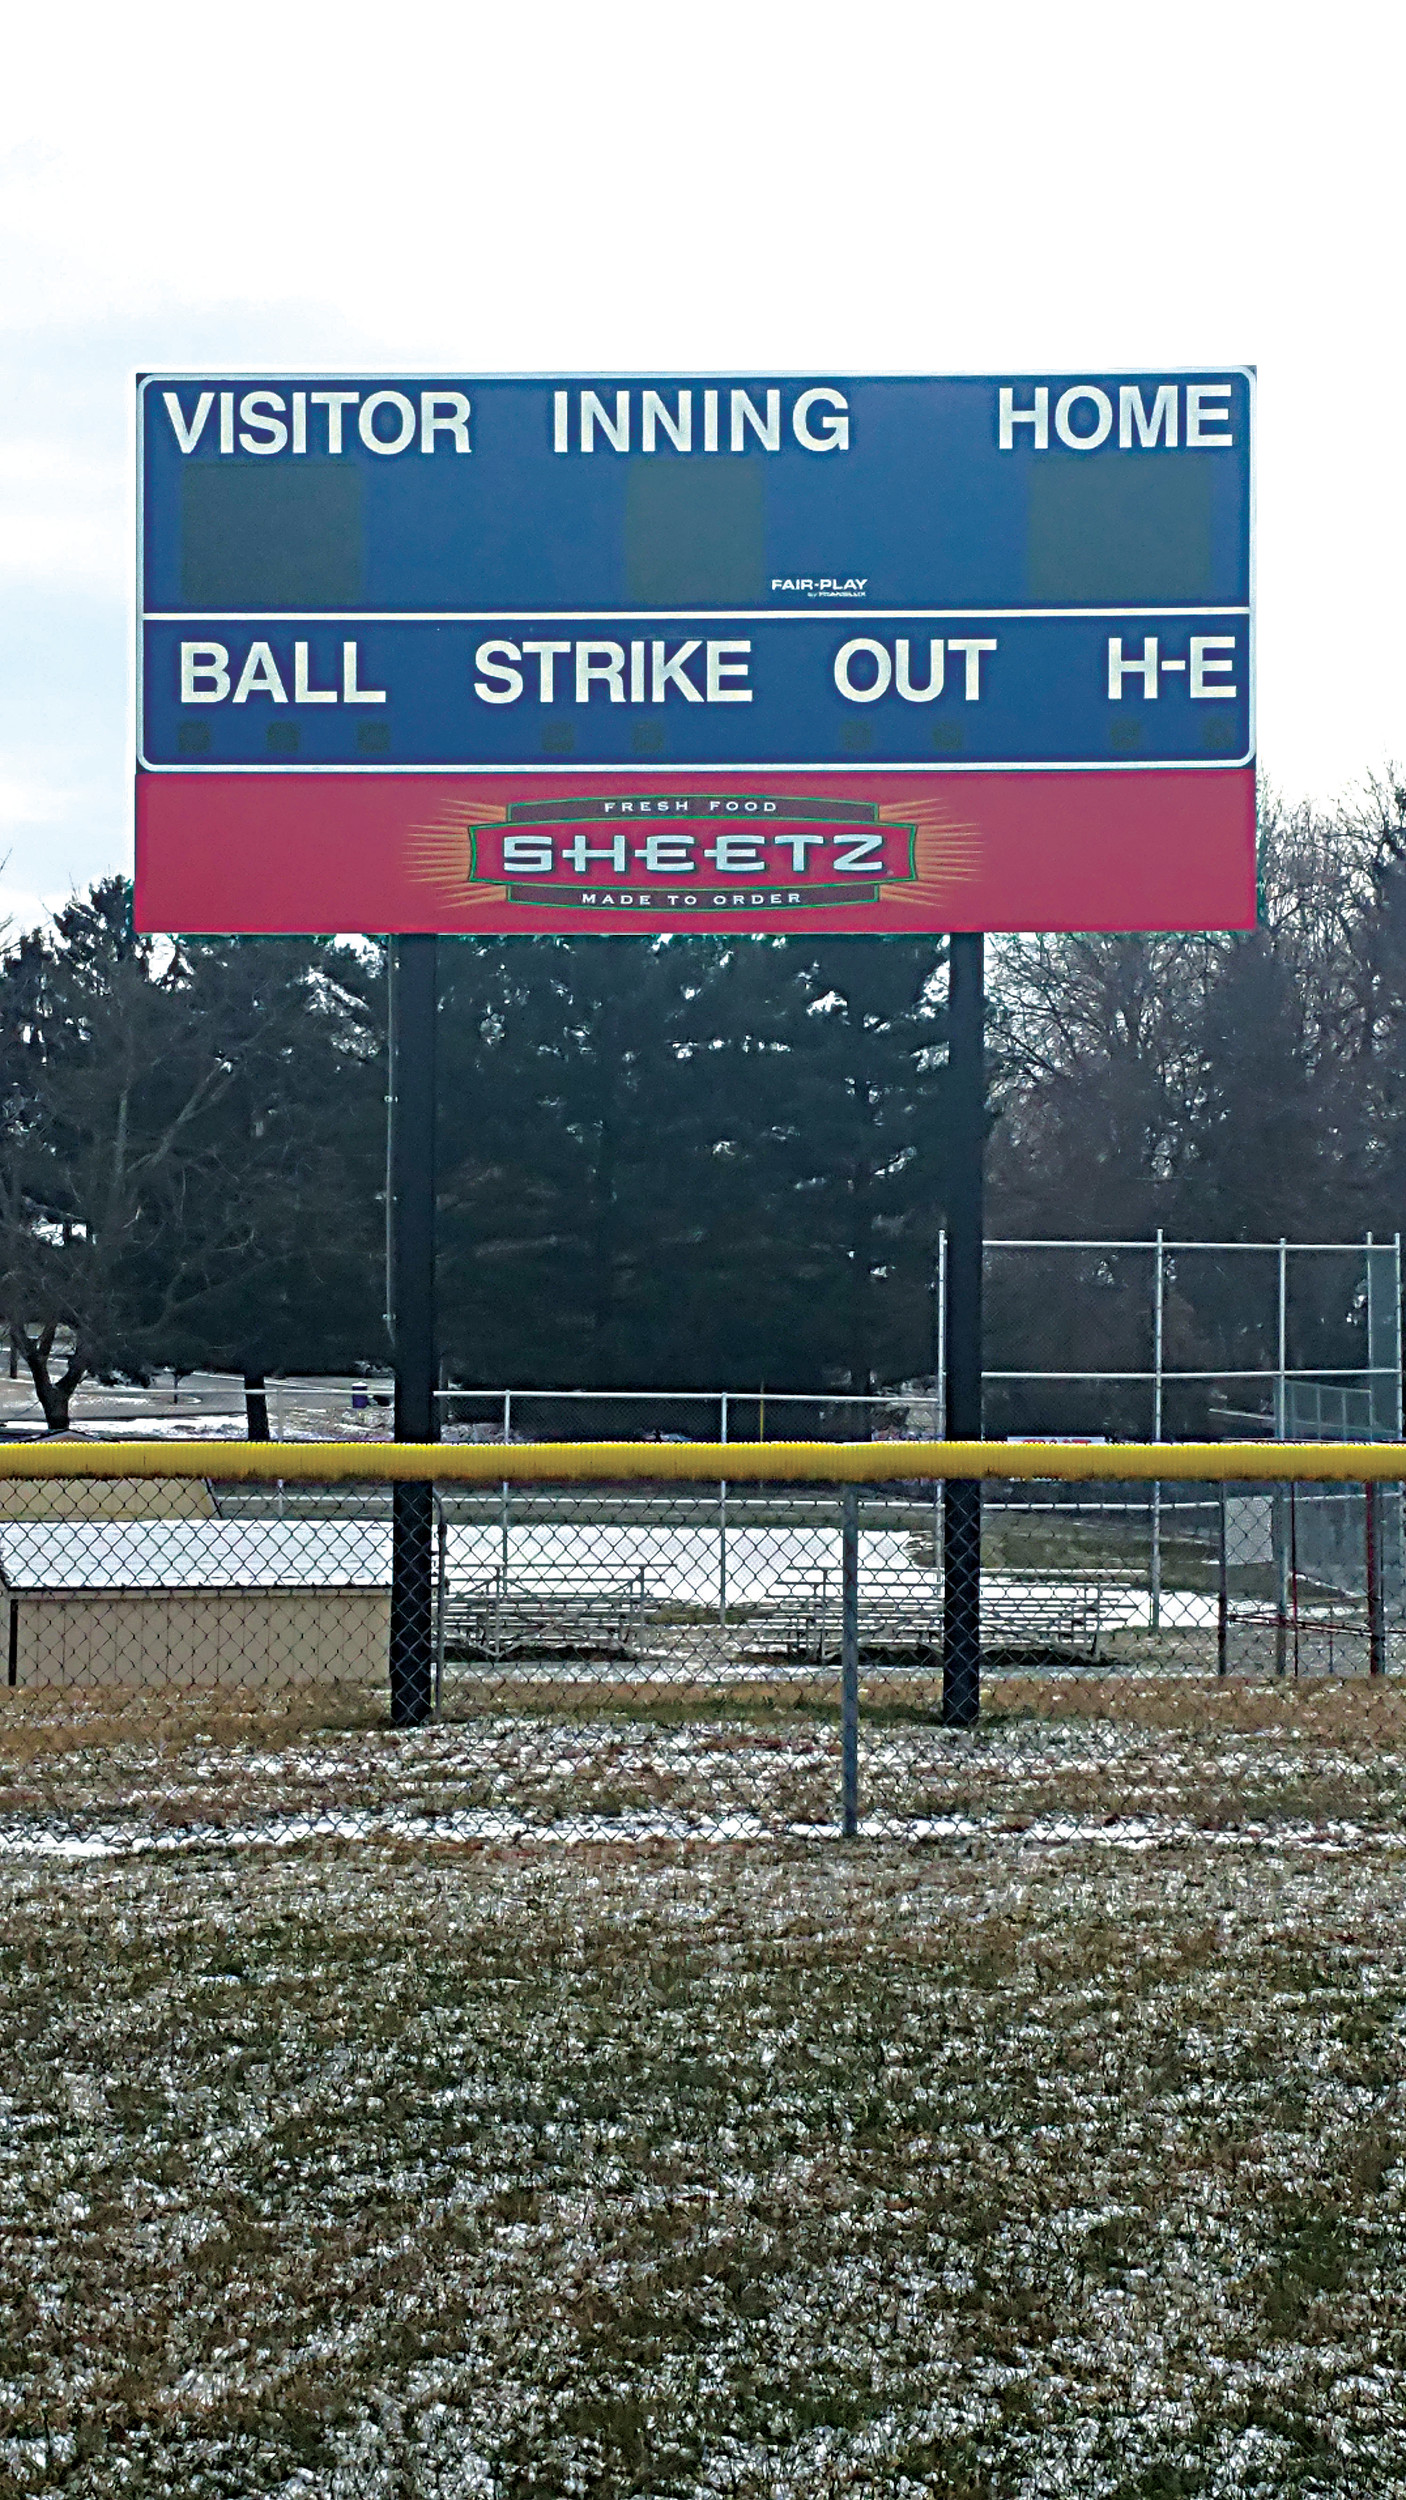 The installation of an electronic scoreboard at Memorial Field was completed last summer.